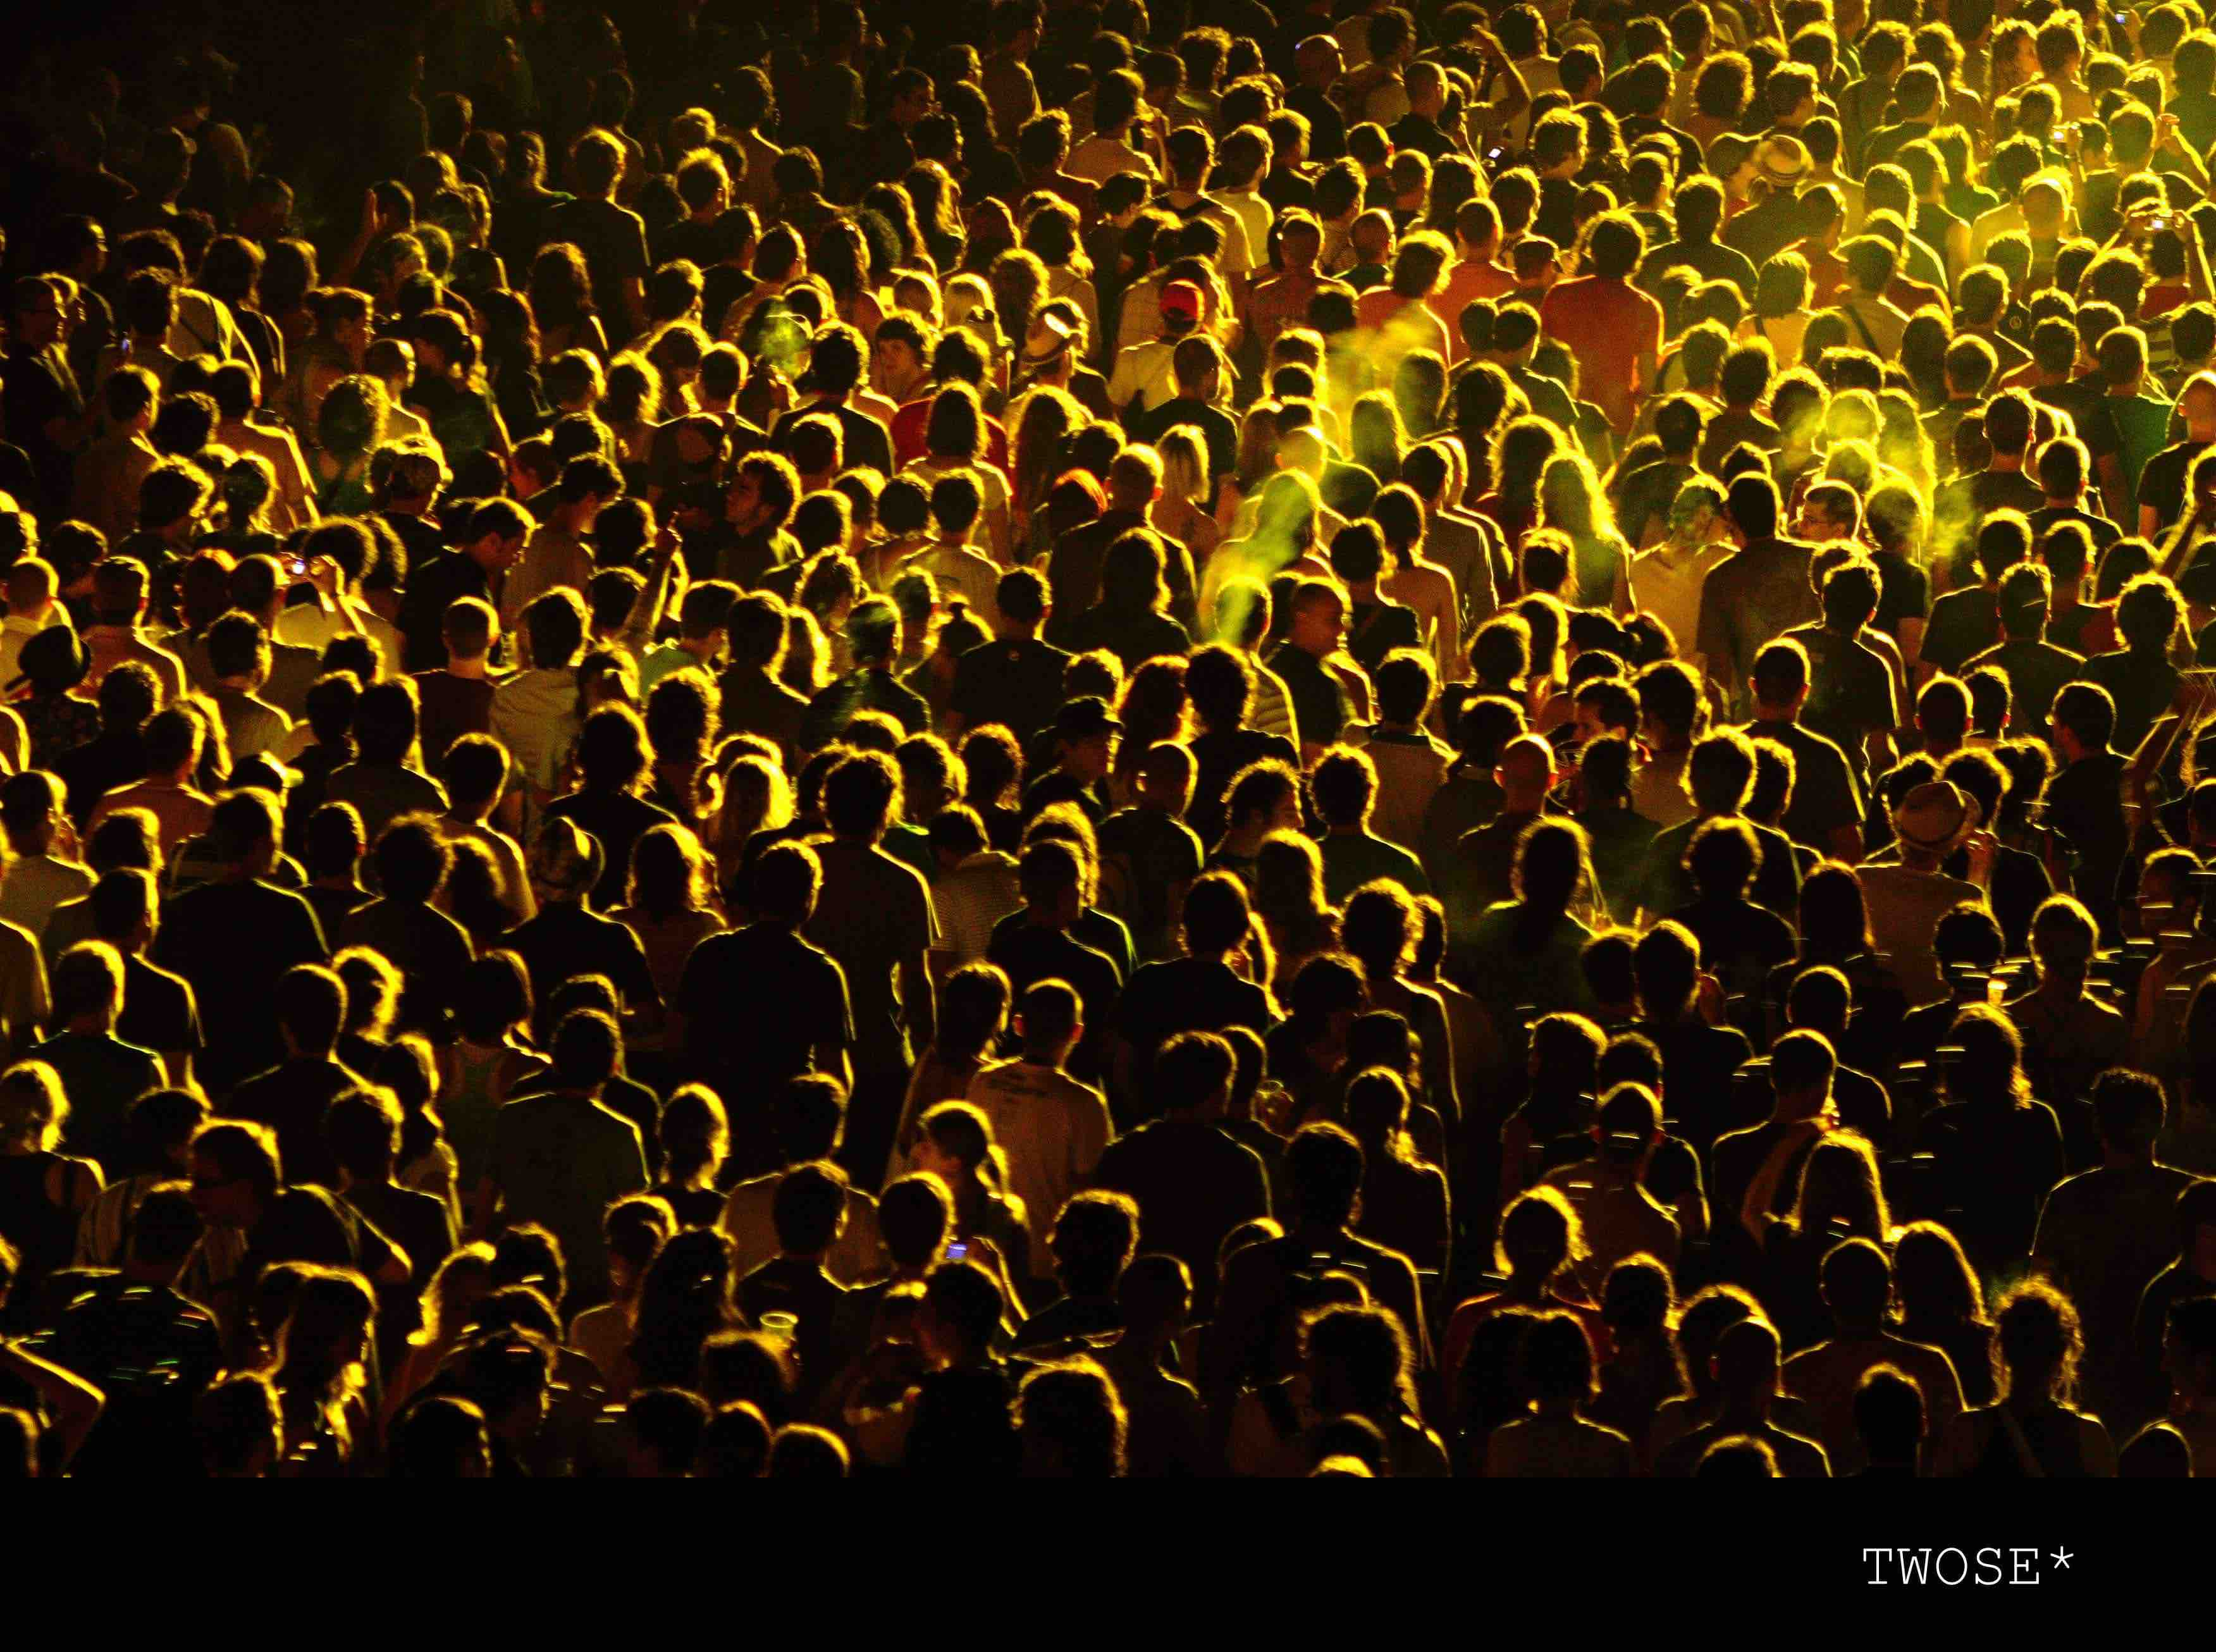 homogenous crowd with yellow light